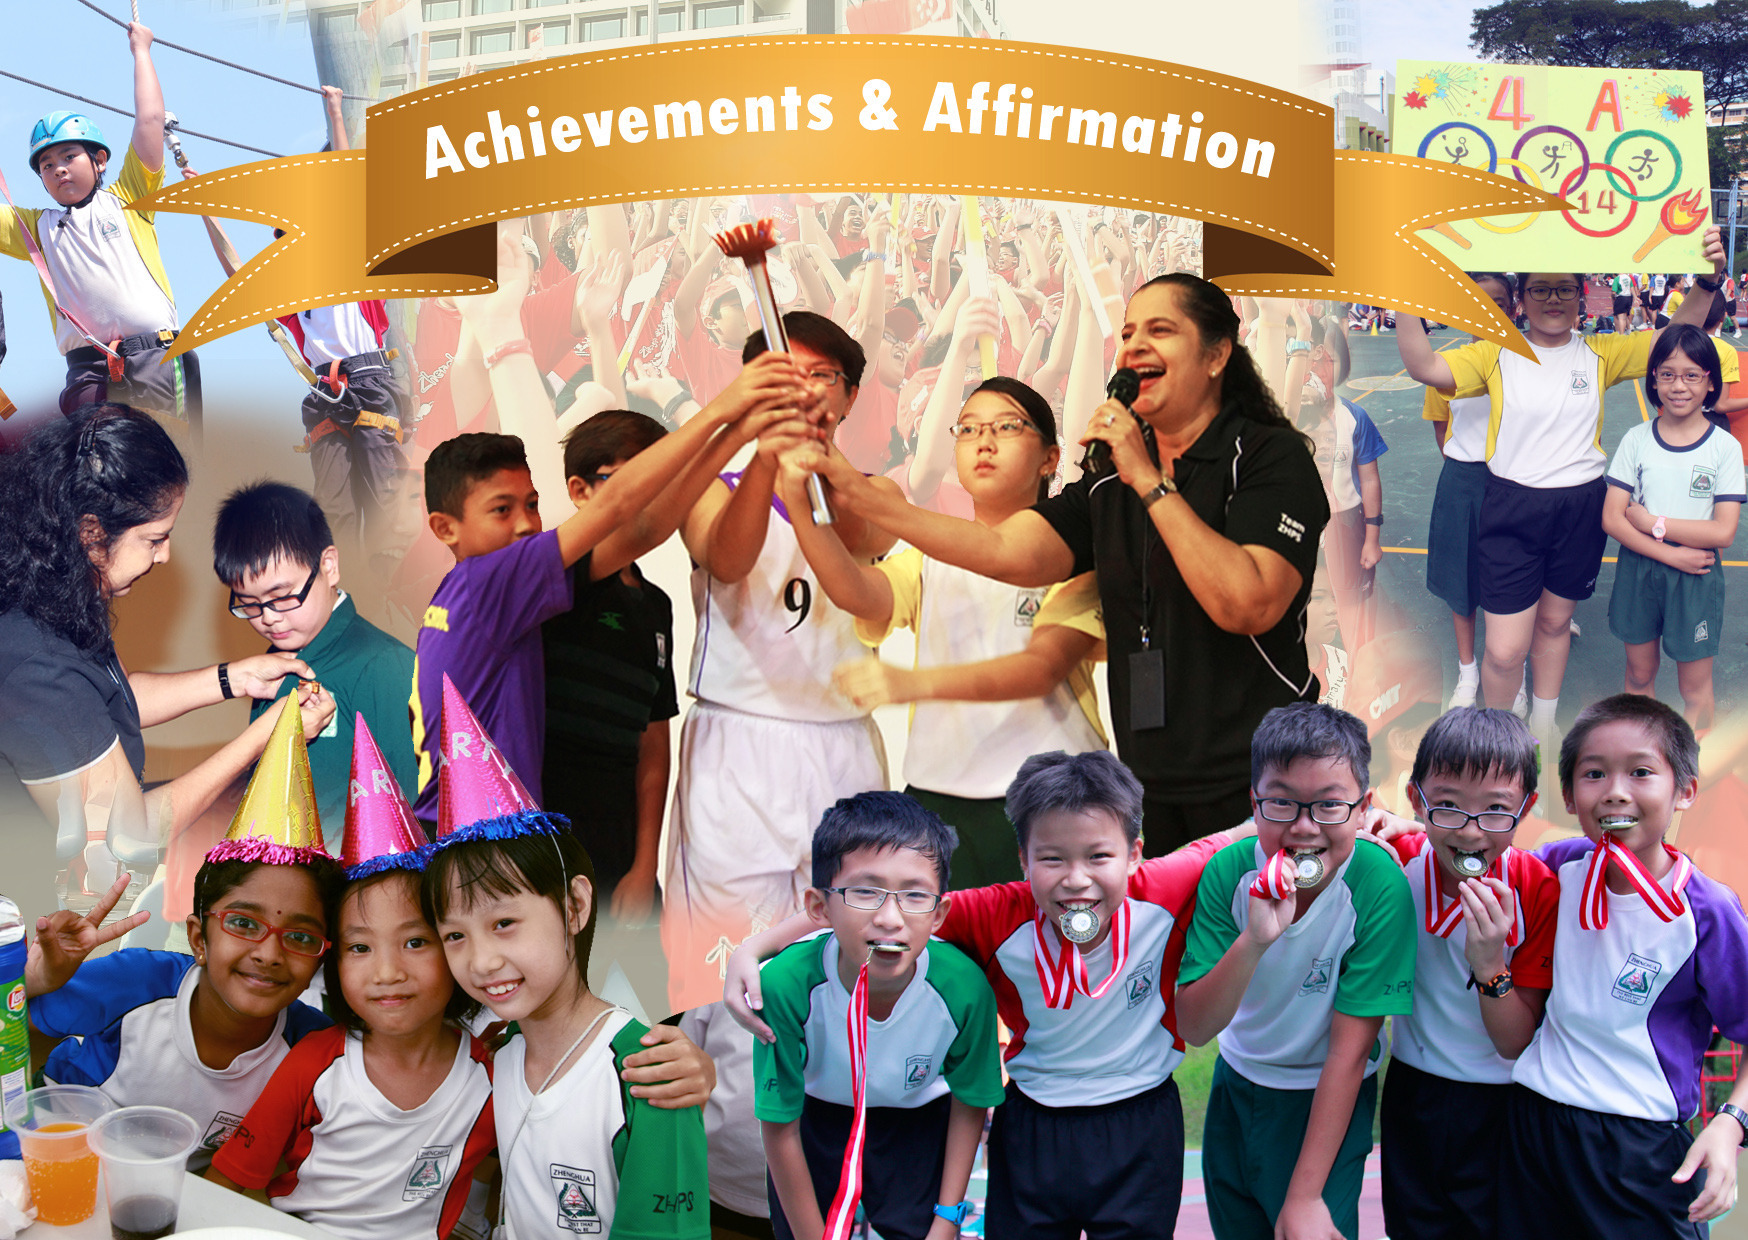 Achievements and Affirmnation.jpg